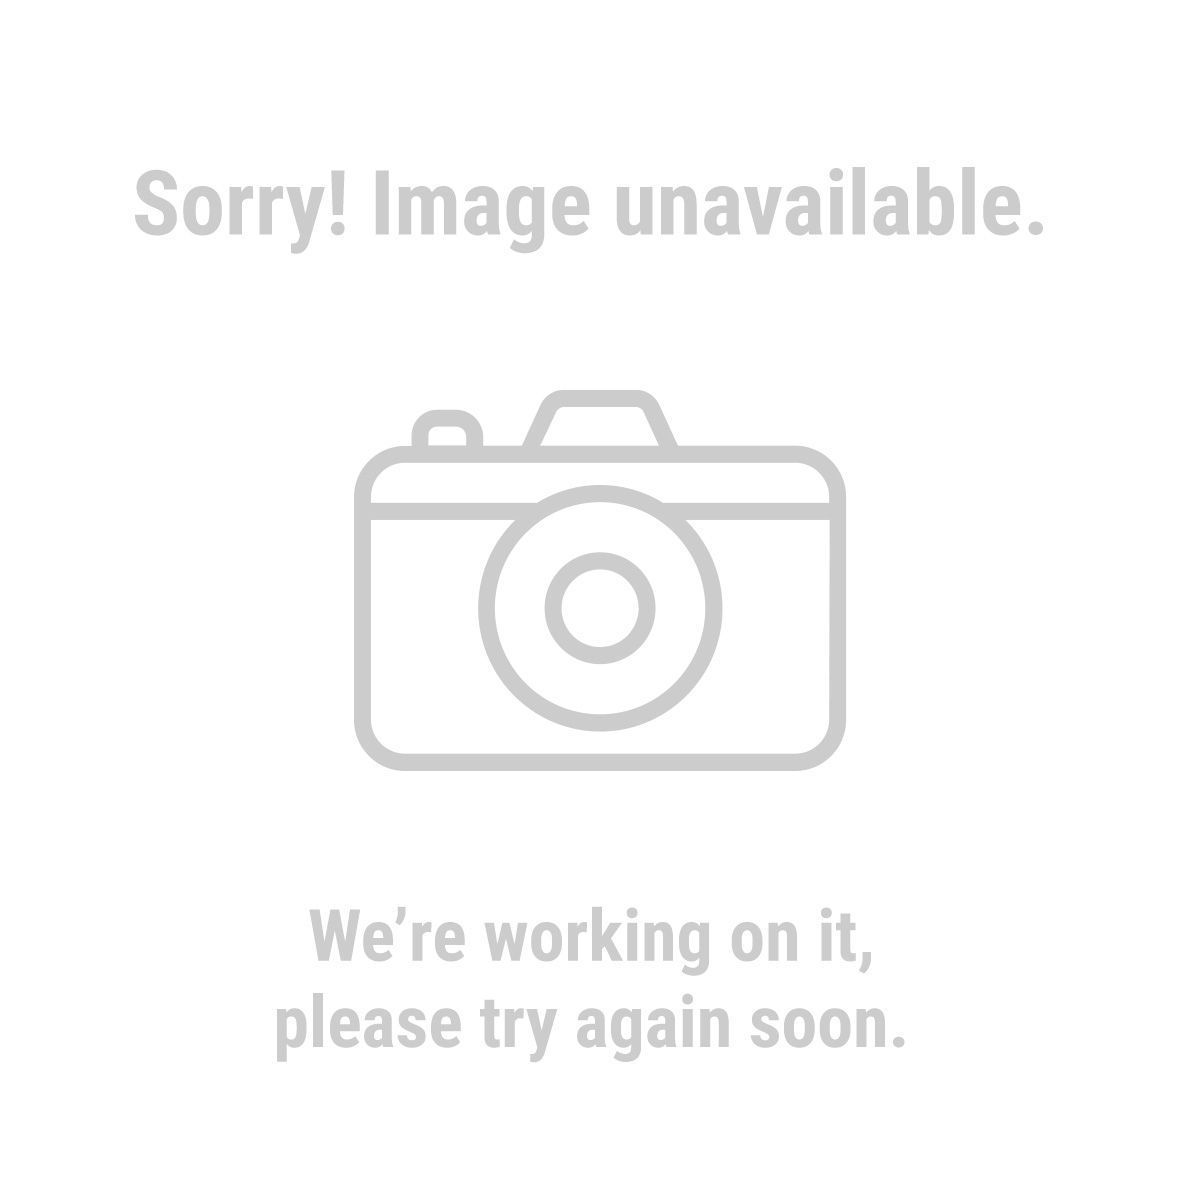 adjustable steel welding table. Black Bedroom Furniture Sets. Home Design Ideas